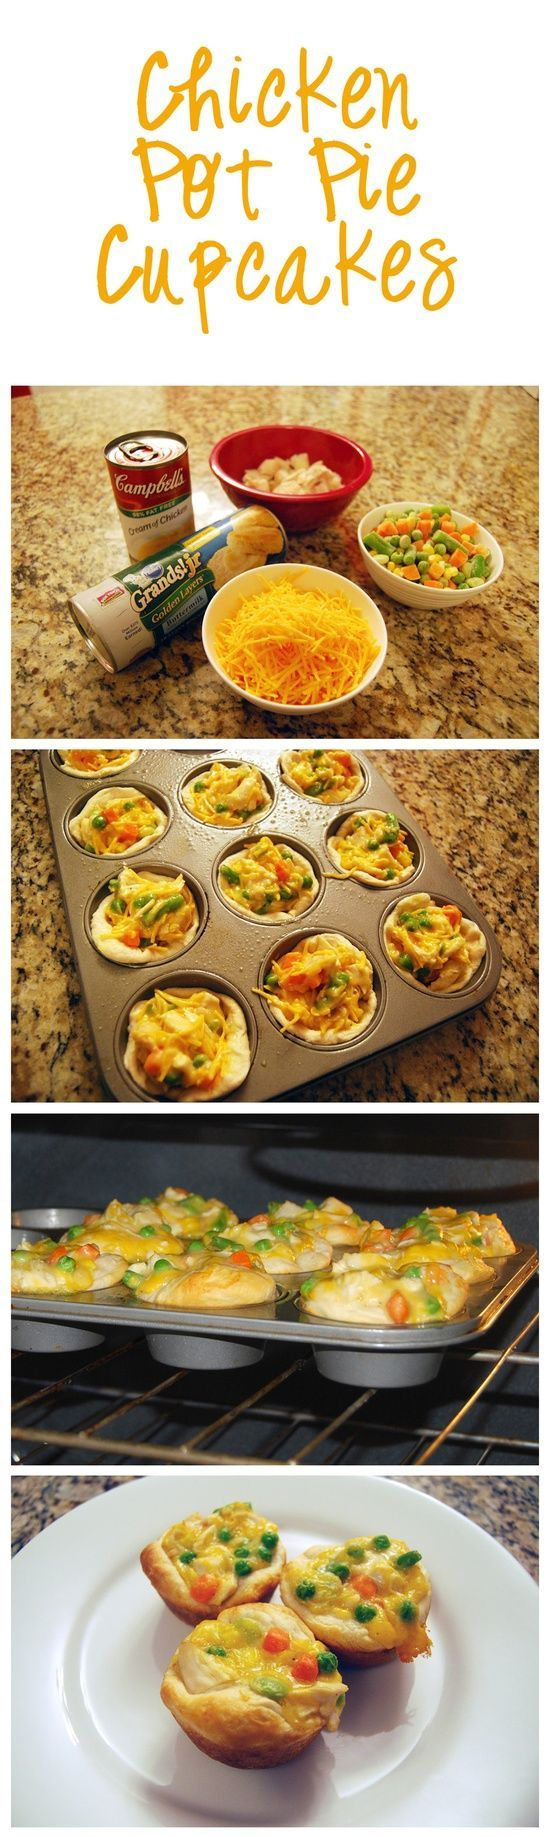 Mini Chicken Pot Pie Cupcakes - This is definitely a redo! So easy and there is a lot of room for variation. I did mixed veggies instead of peas and carrots for the chicken one. I also made a veggie one with potatoes and cream of mushroom soup. They were delicious, everyone loved them. Great leftover too!